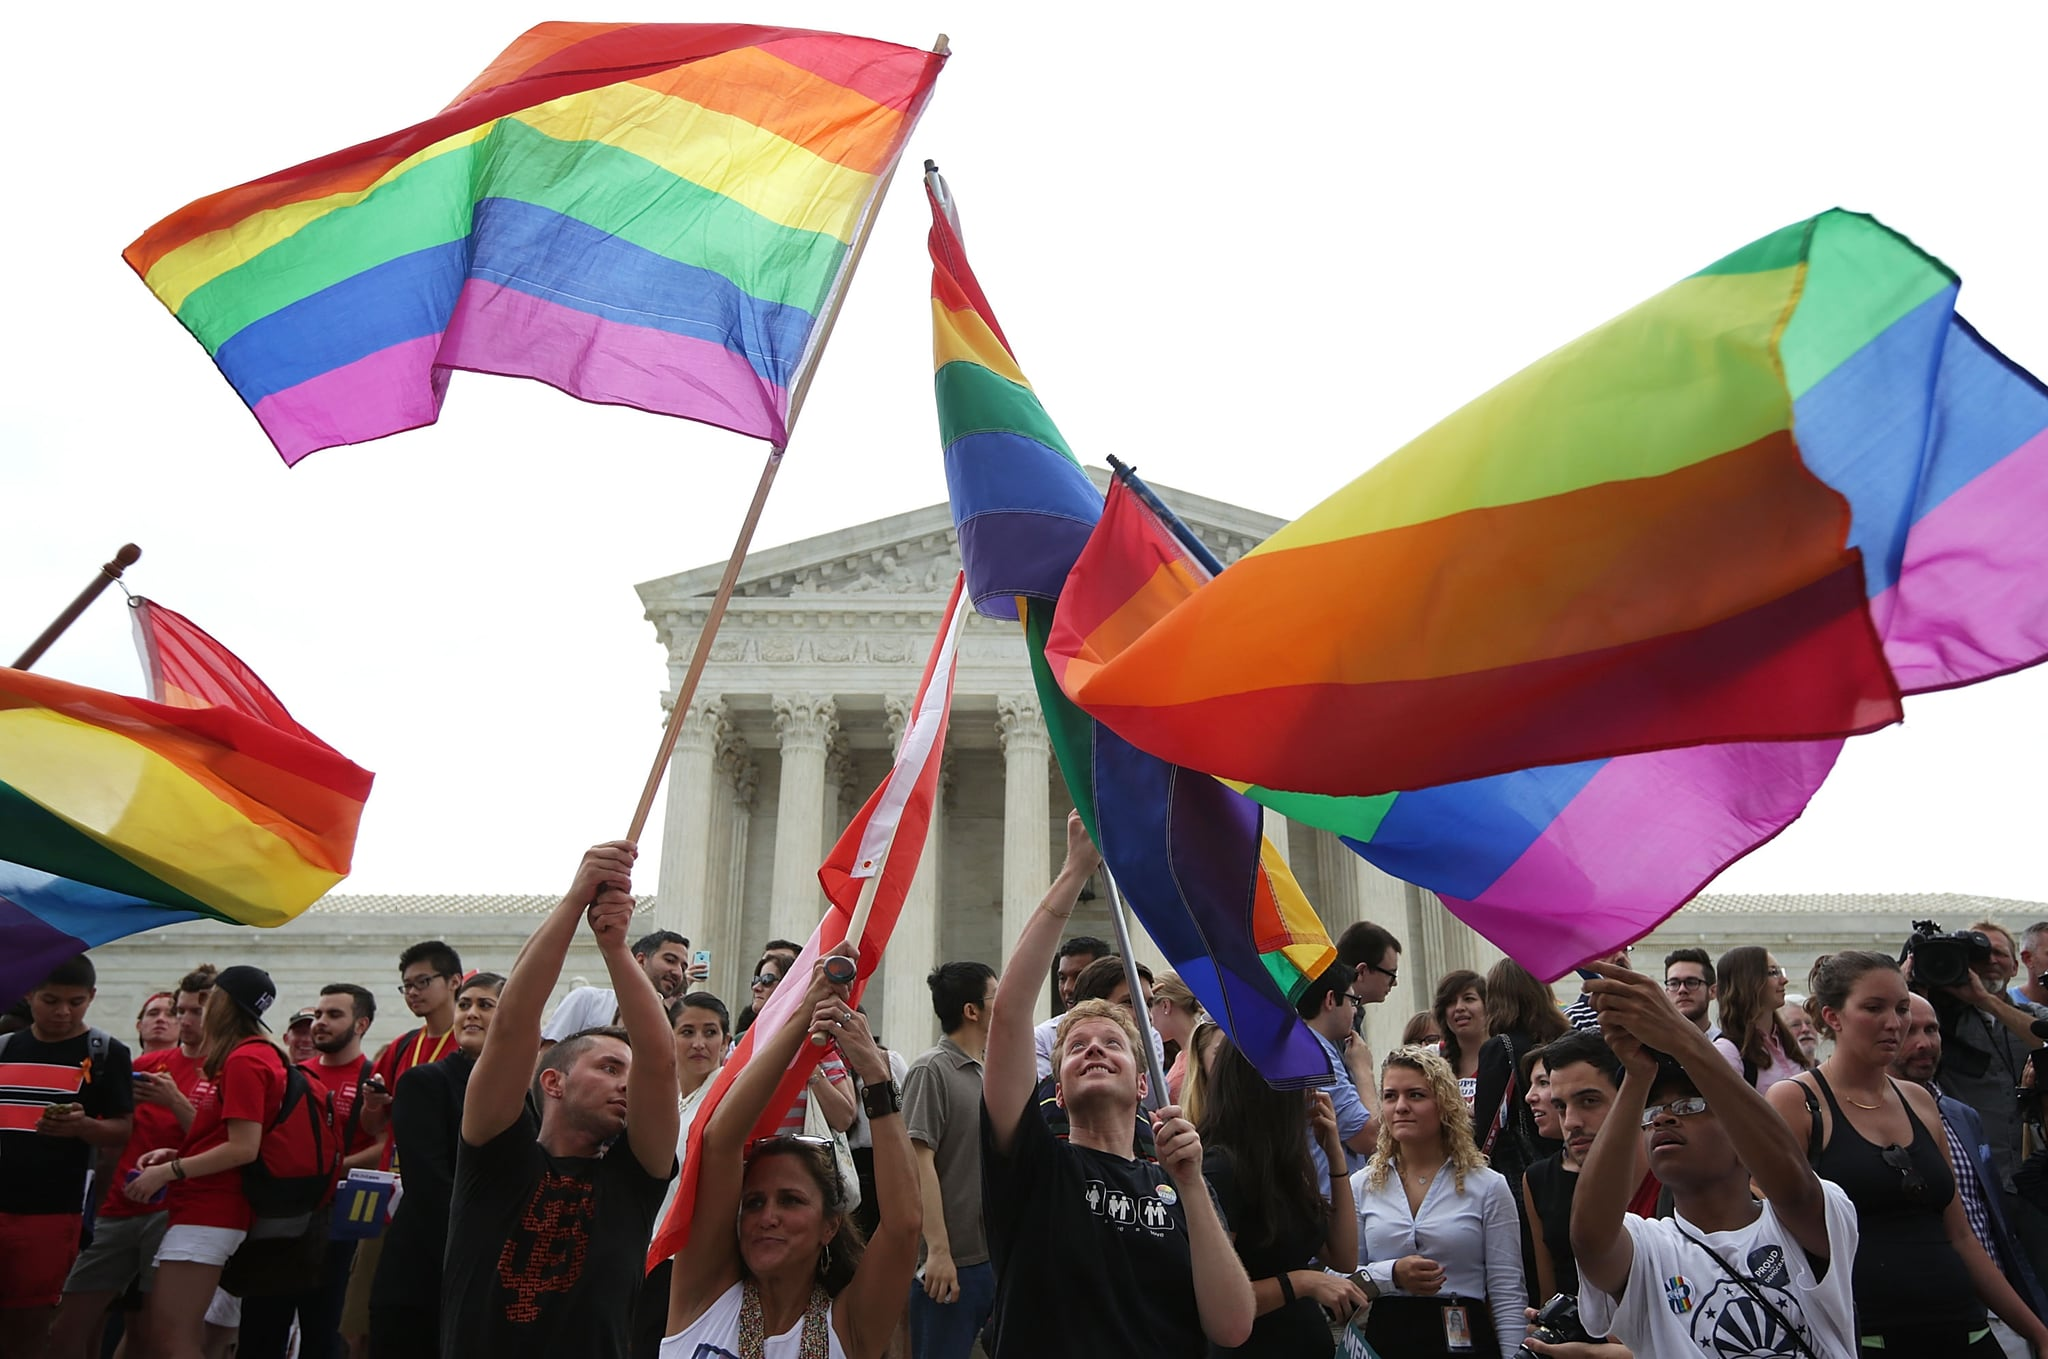 homosexual marriages in the us should be legalized because homosexual couples are equal to heterosex Despite the us supreme court ruling that legalized same-sex marriage, gay and lesbian couples face roadblocks to adopting children from foster care in some states.